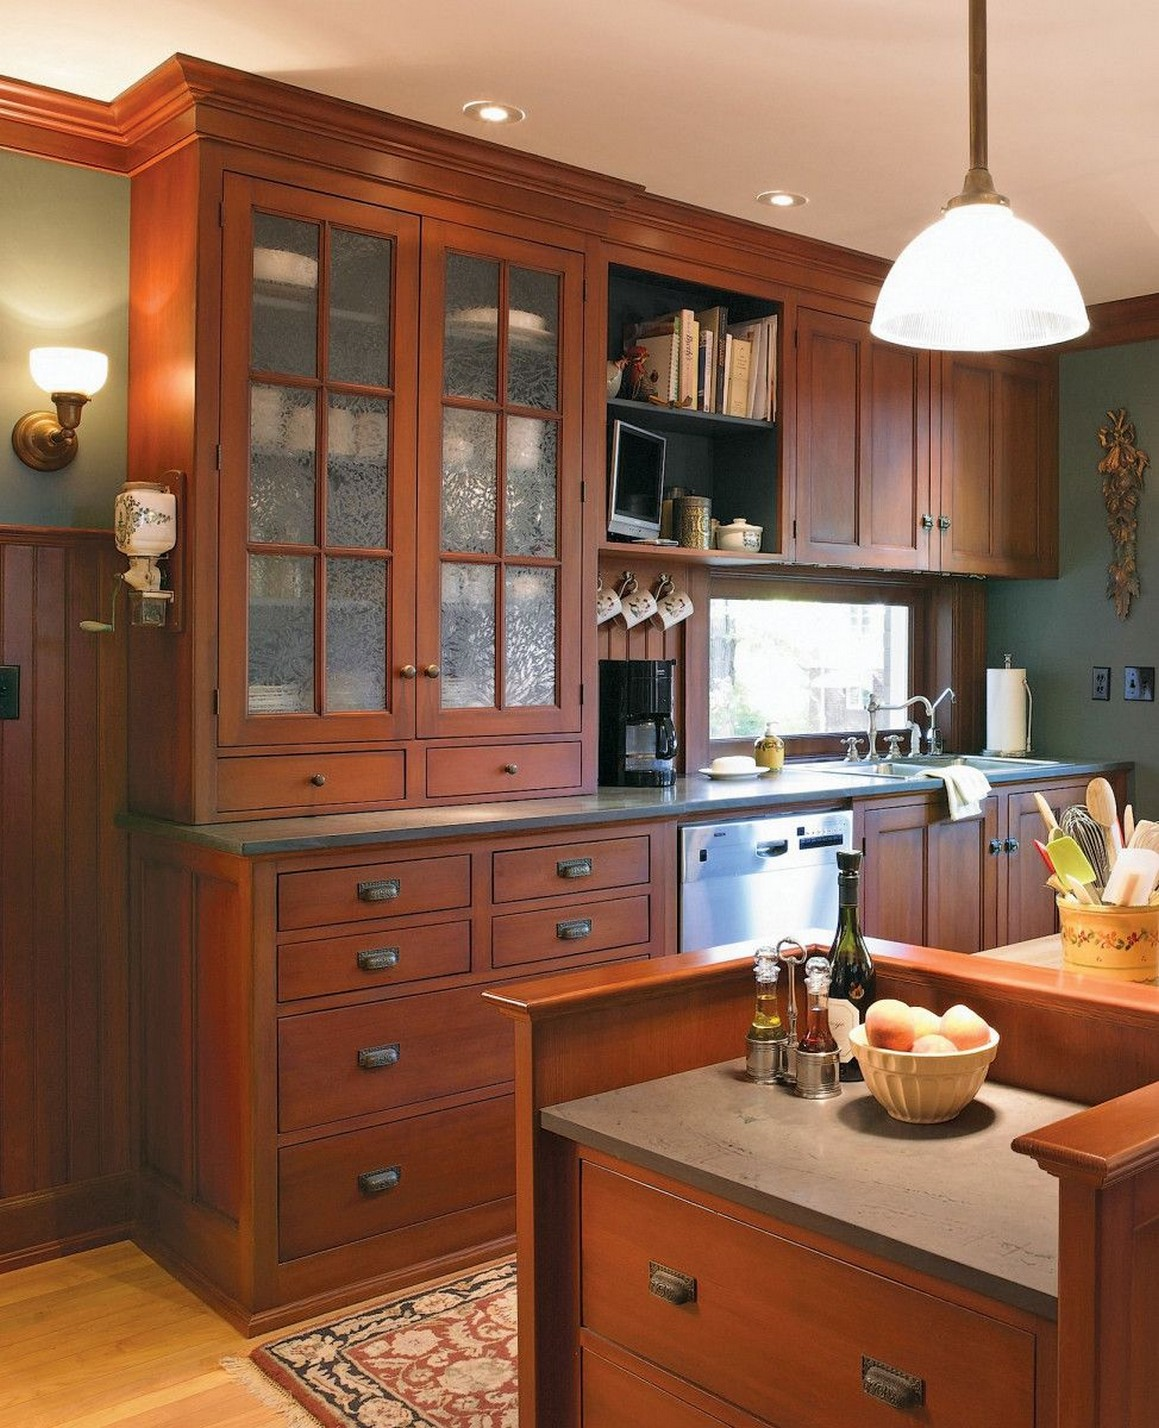 71 Painted Kitchen Cabinets Ideas For Home Decor 30